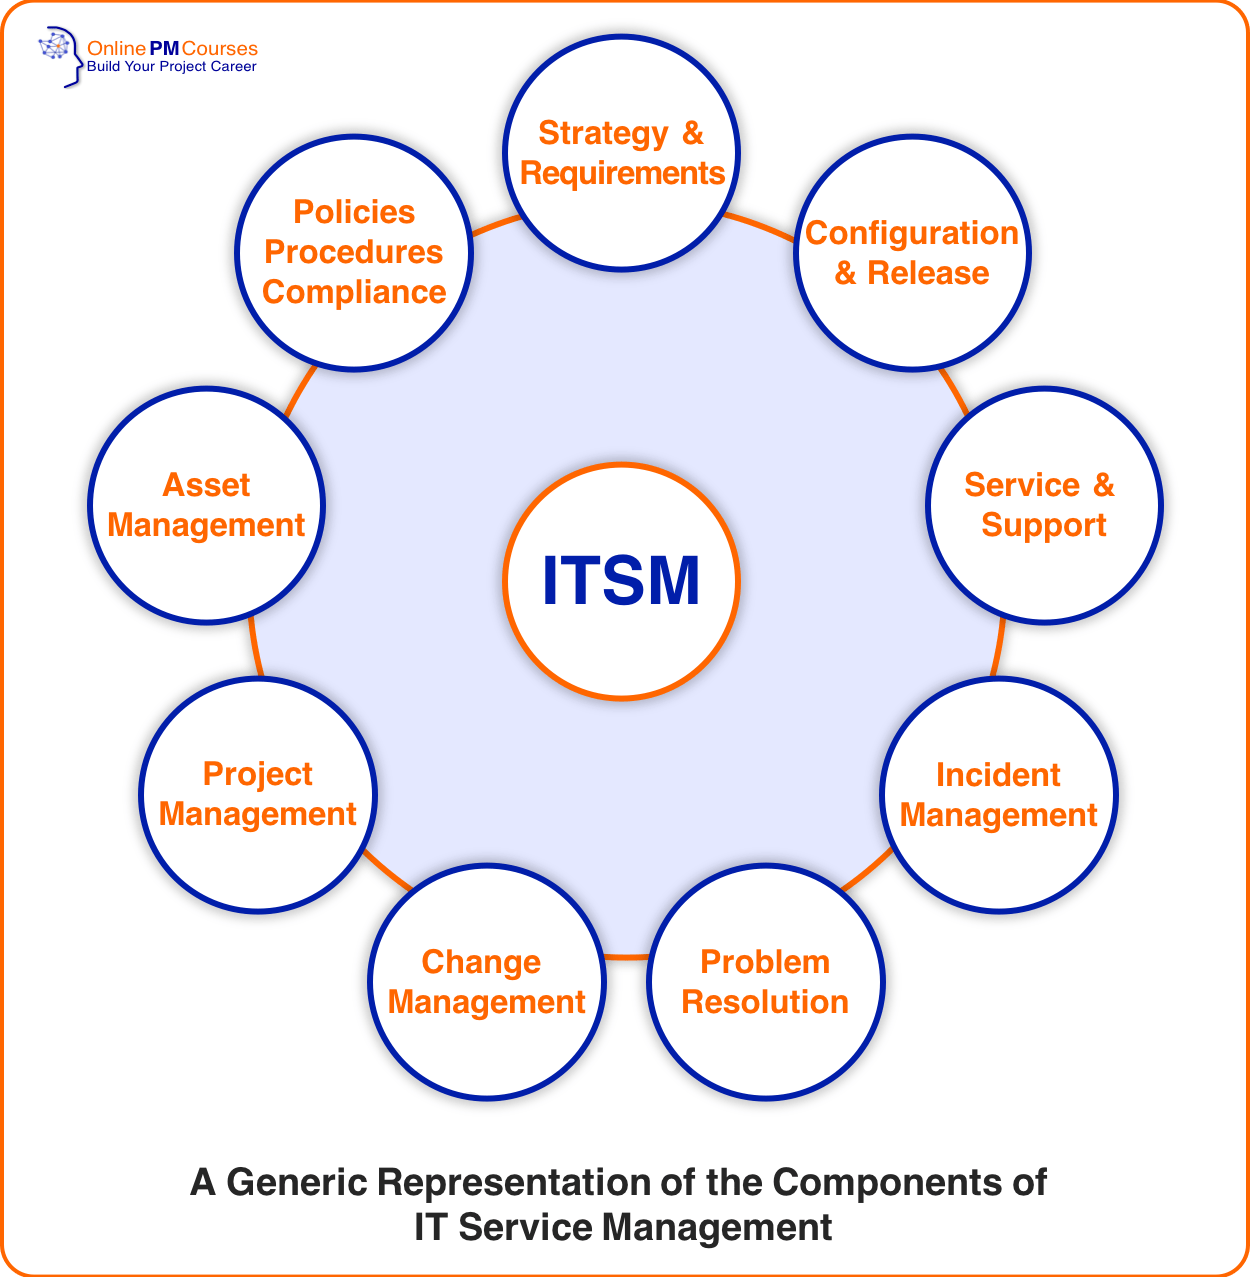 Generic representation of the components of IT Service Management (ITSM)